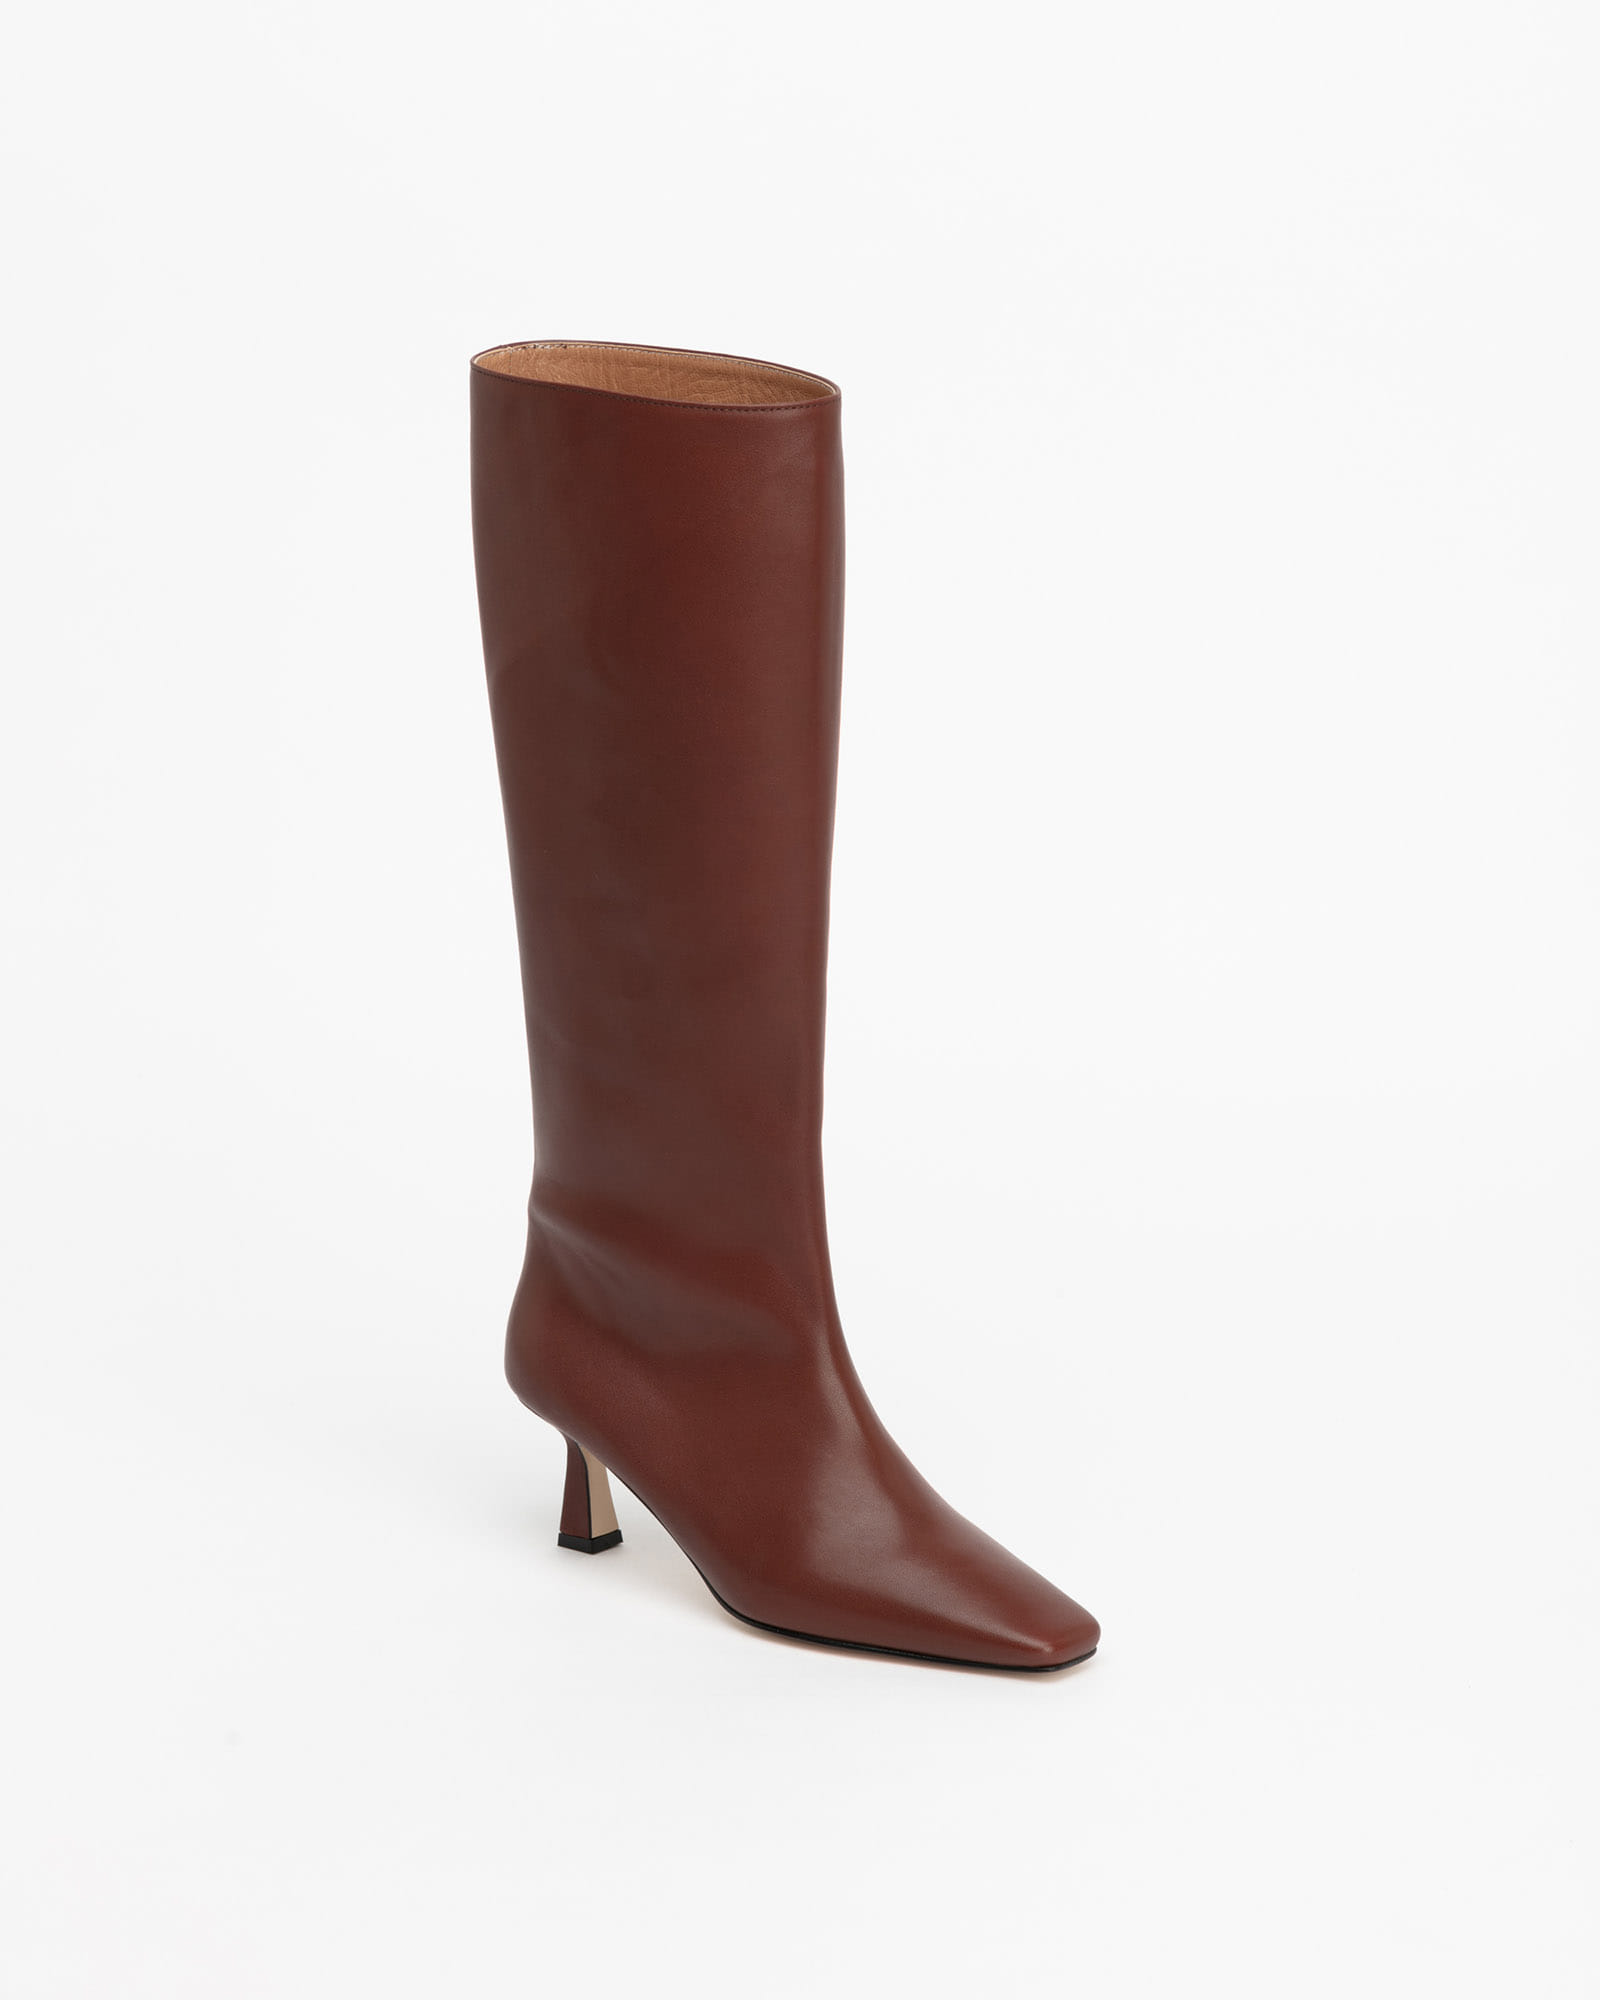 LOB Boots in Tender Brown